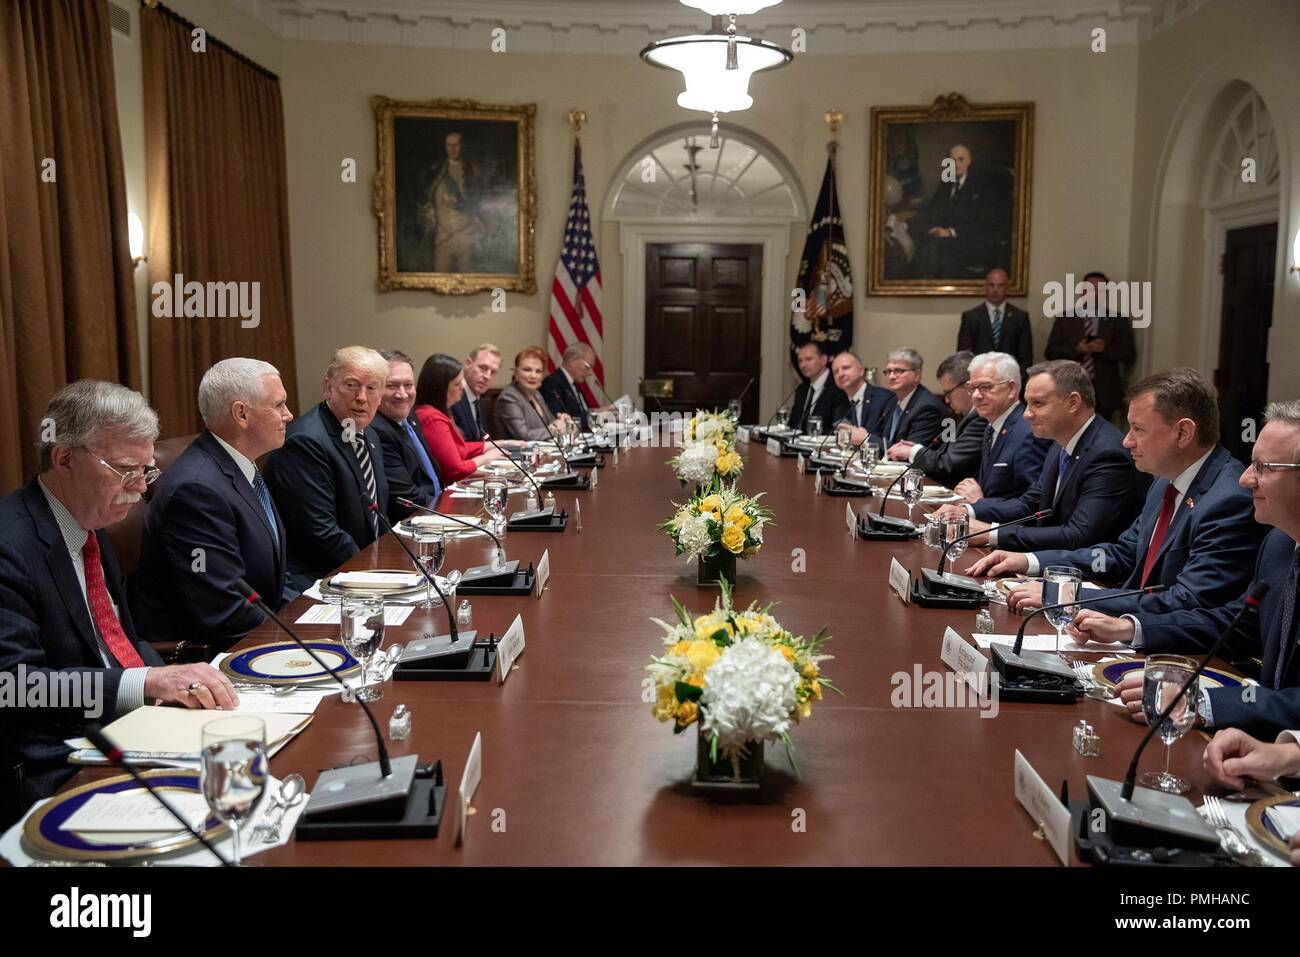 U.S President Donald Trump, right, hosts delegation level discussions with Polish President Andrzej Duda, right, in the Cabinet Room of the White House September 18, 2018 in Washington, DC. - Stock Image